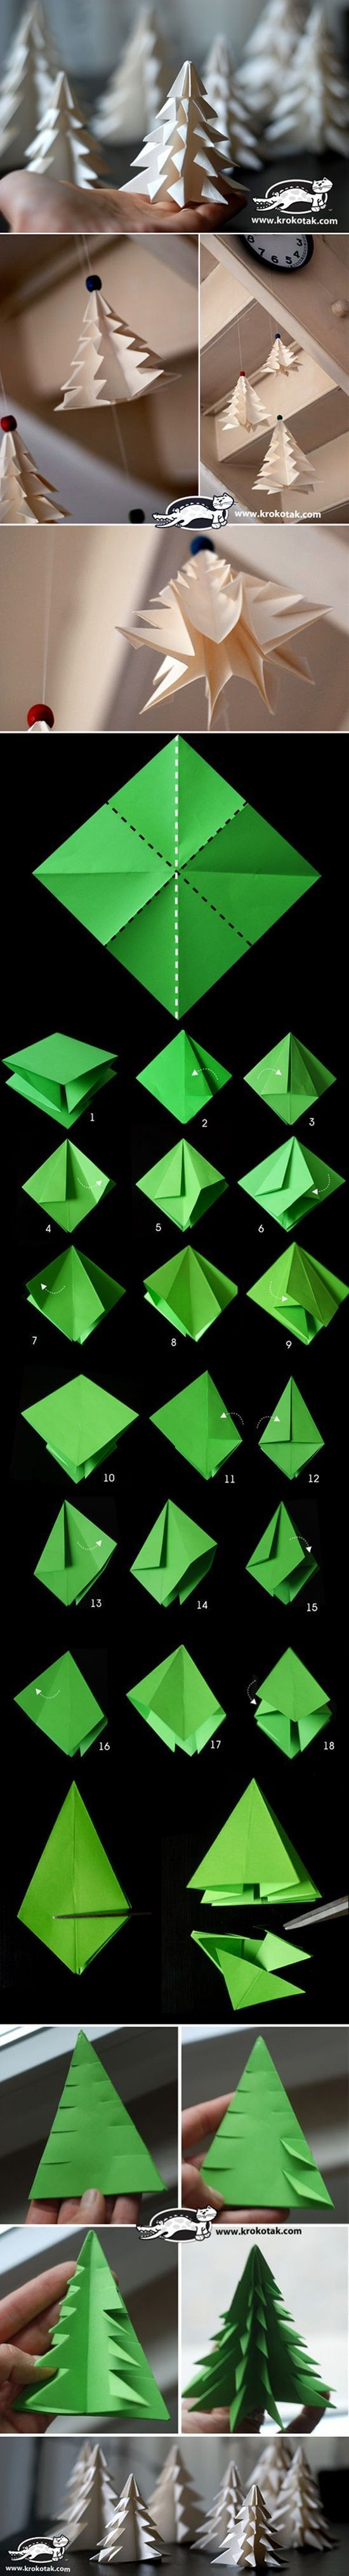 We've always wanted to build origami shapes, but it looked too hard to learn. Turns out we were wrong, we found these awesome origami tutorials that would allow any beginner to start building origami shapes. #diychristmasdecorations